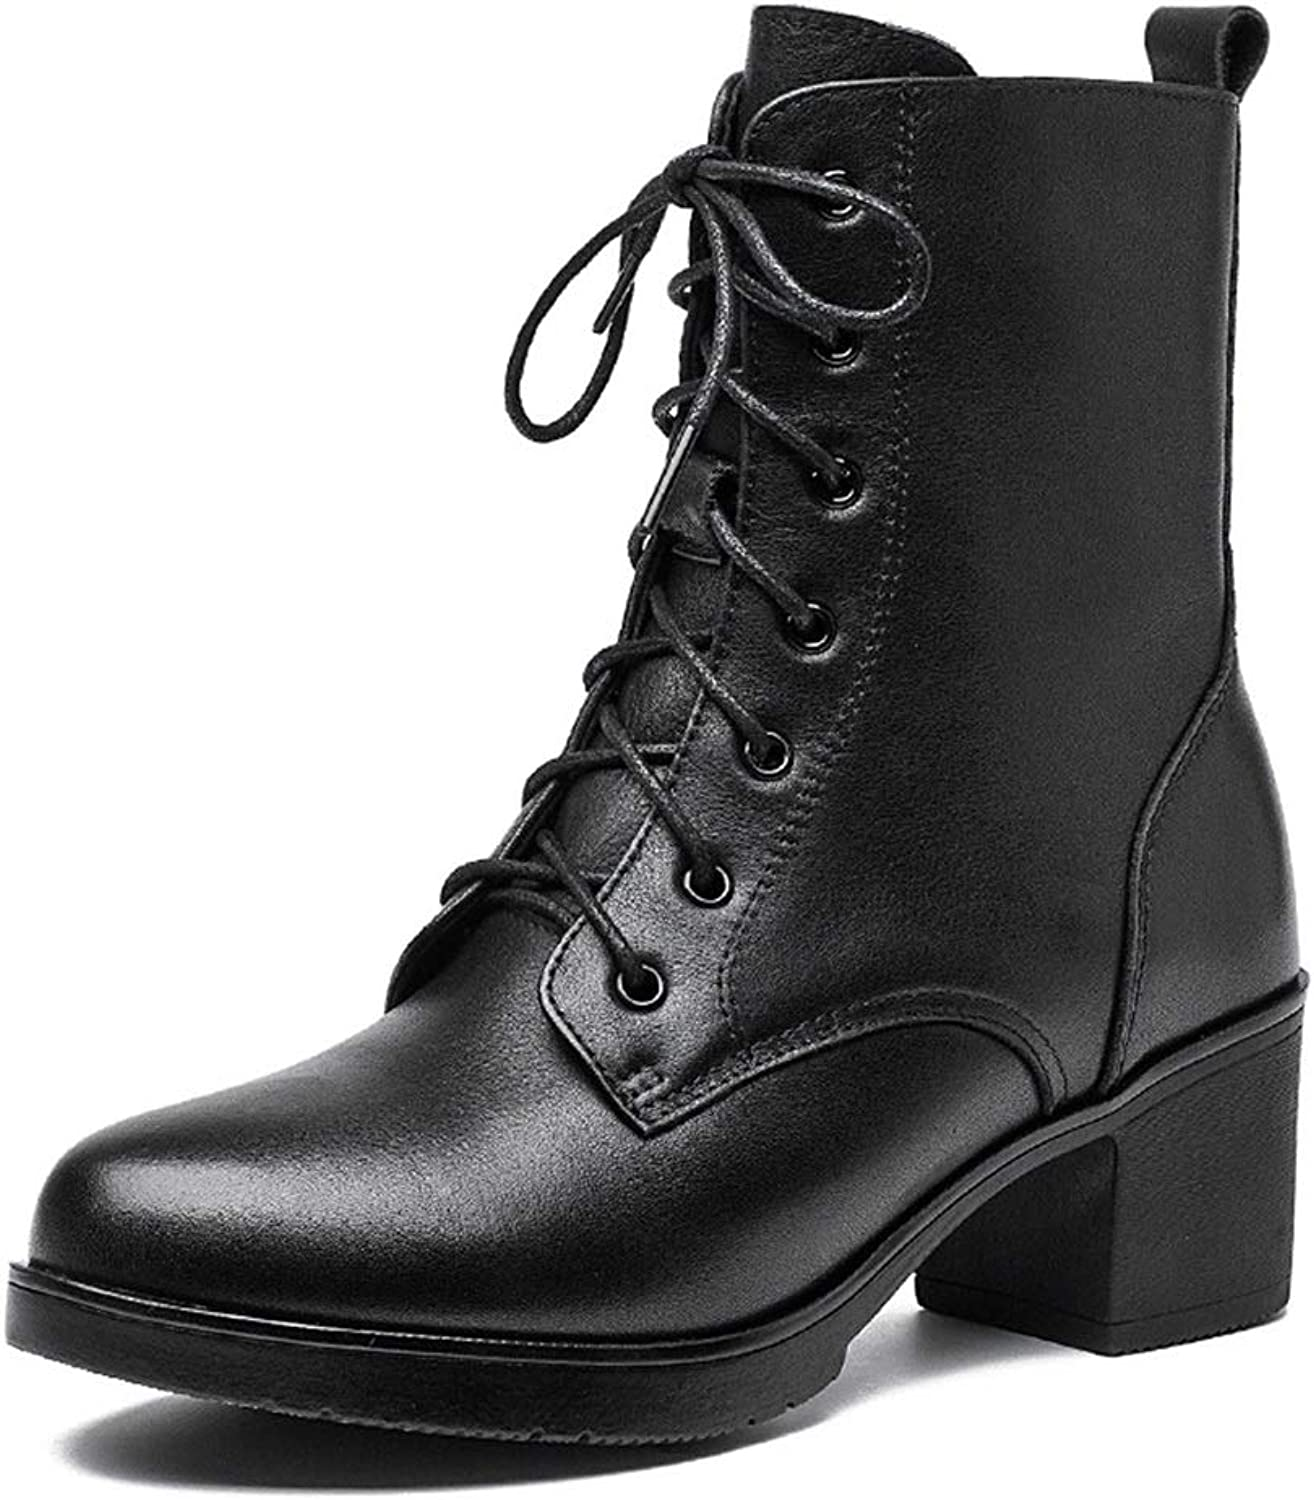 Women Boots with Pointed Toe Lace Up Zipper Ankle Boots Winter Warm shoes Fashion Dress Boots Black Martin Boots (color   Black, Size   38)